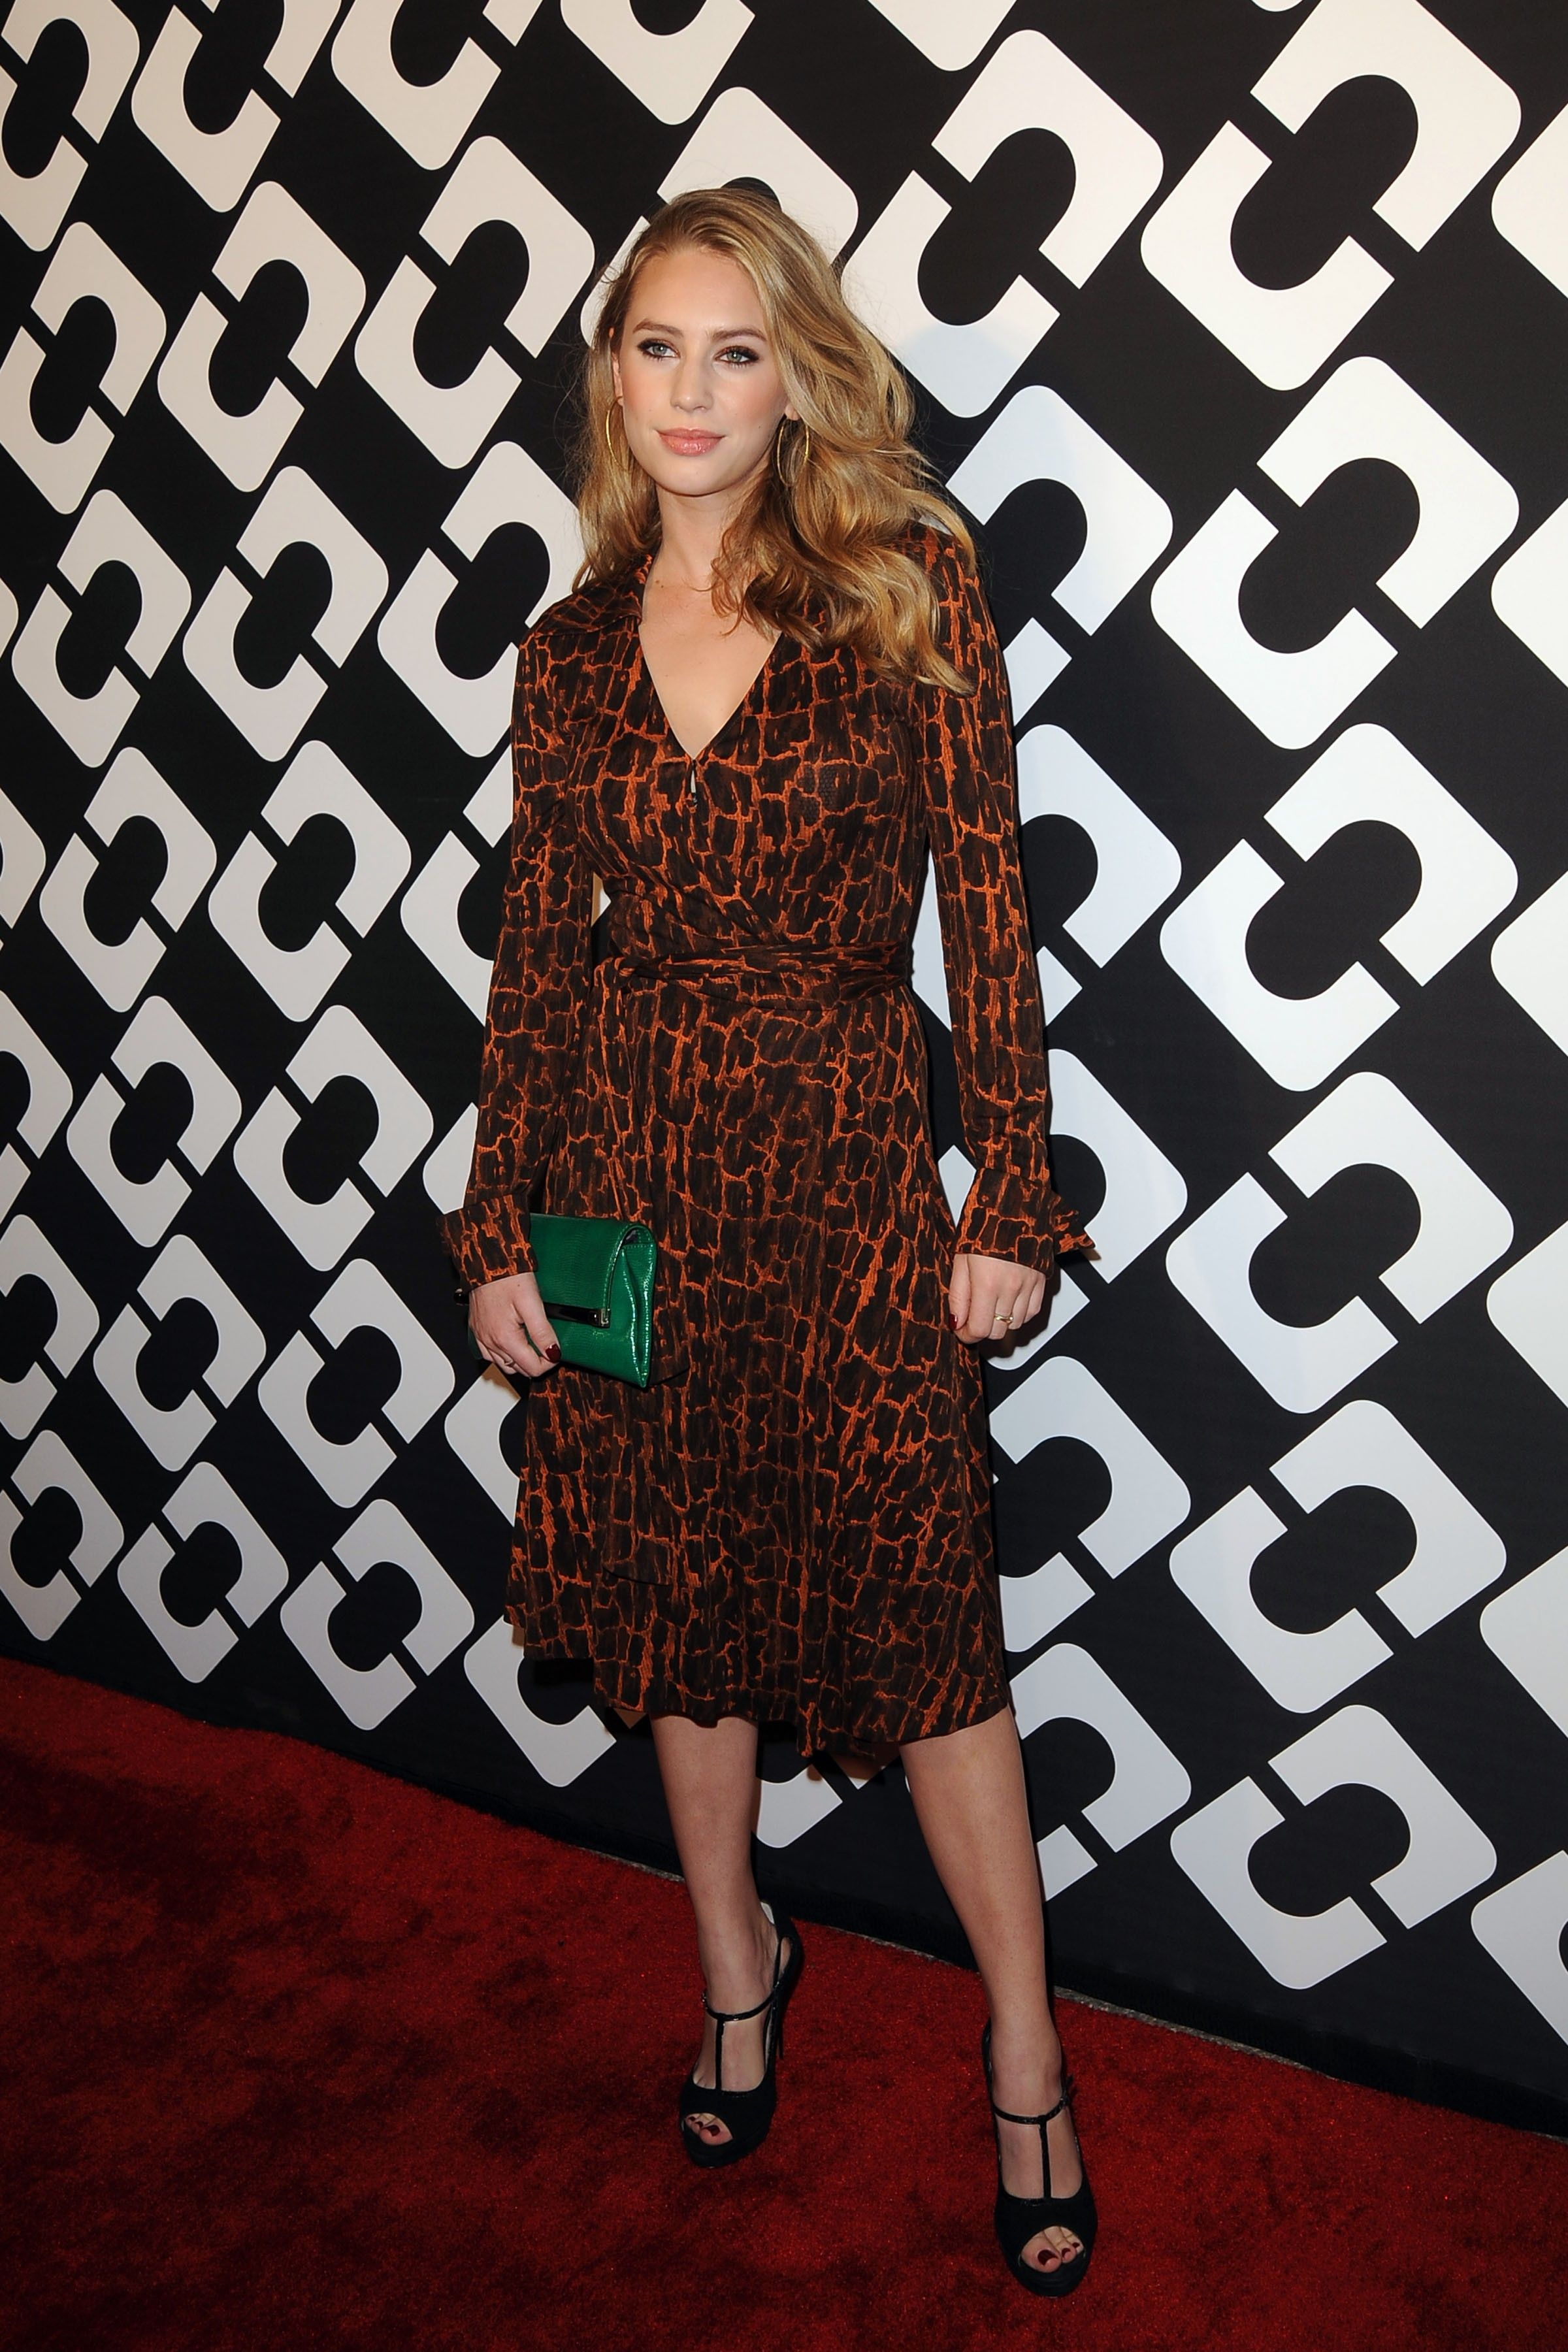 Dylan Penn wears a classic Diane Von Furstenberg wrap dress // The Definitive Guide To New Hollywood Royalty